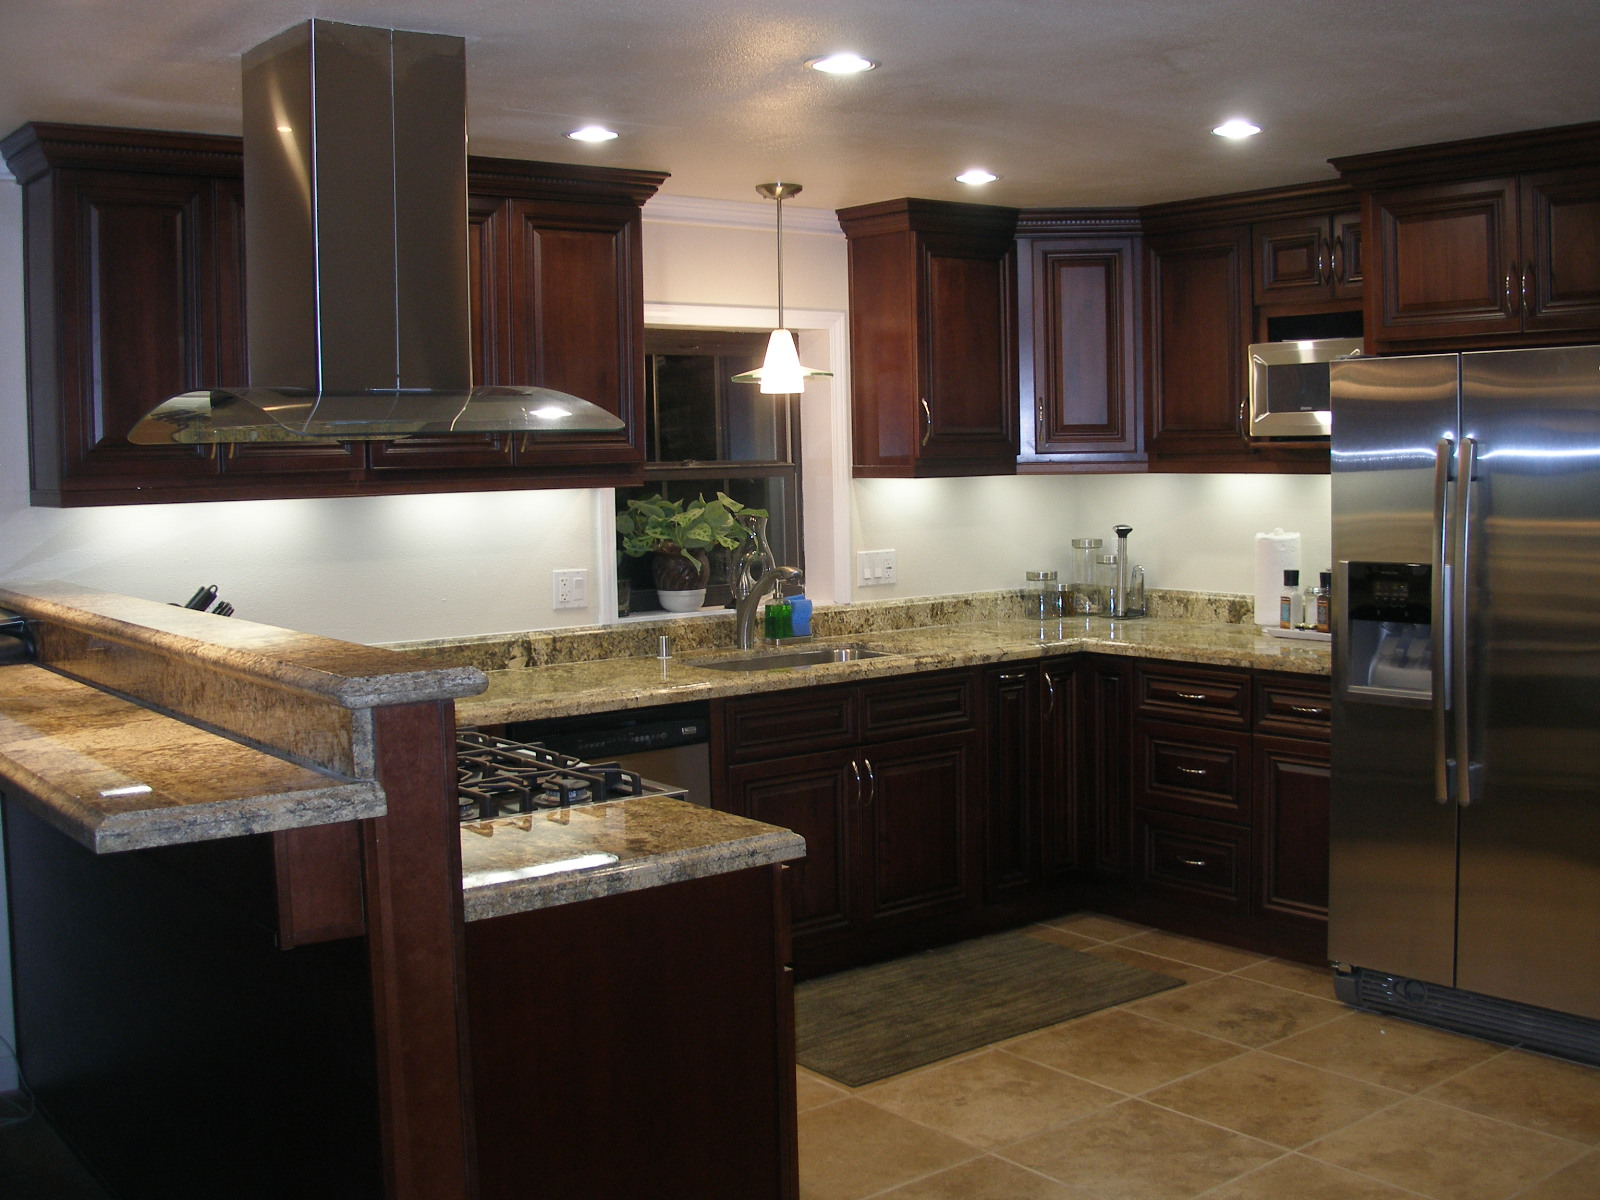 Kitchen remodeling brad t jones construction for Kitchen remodel ideas